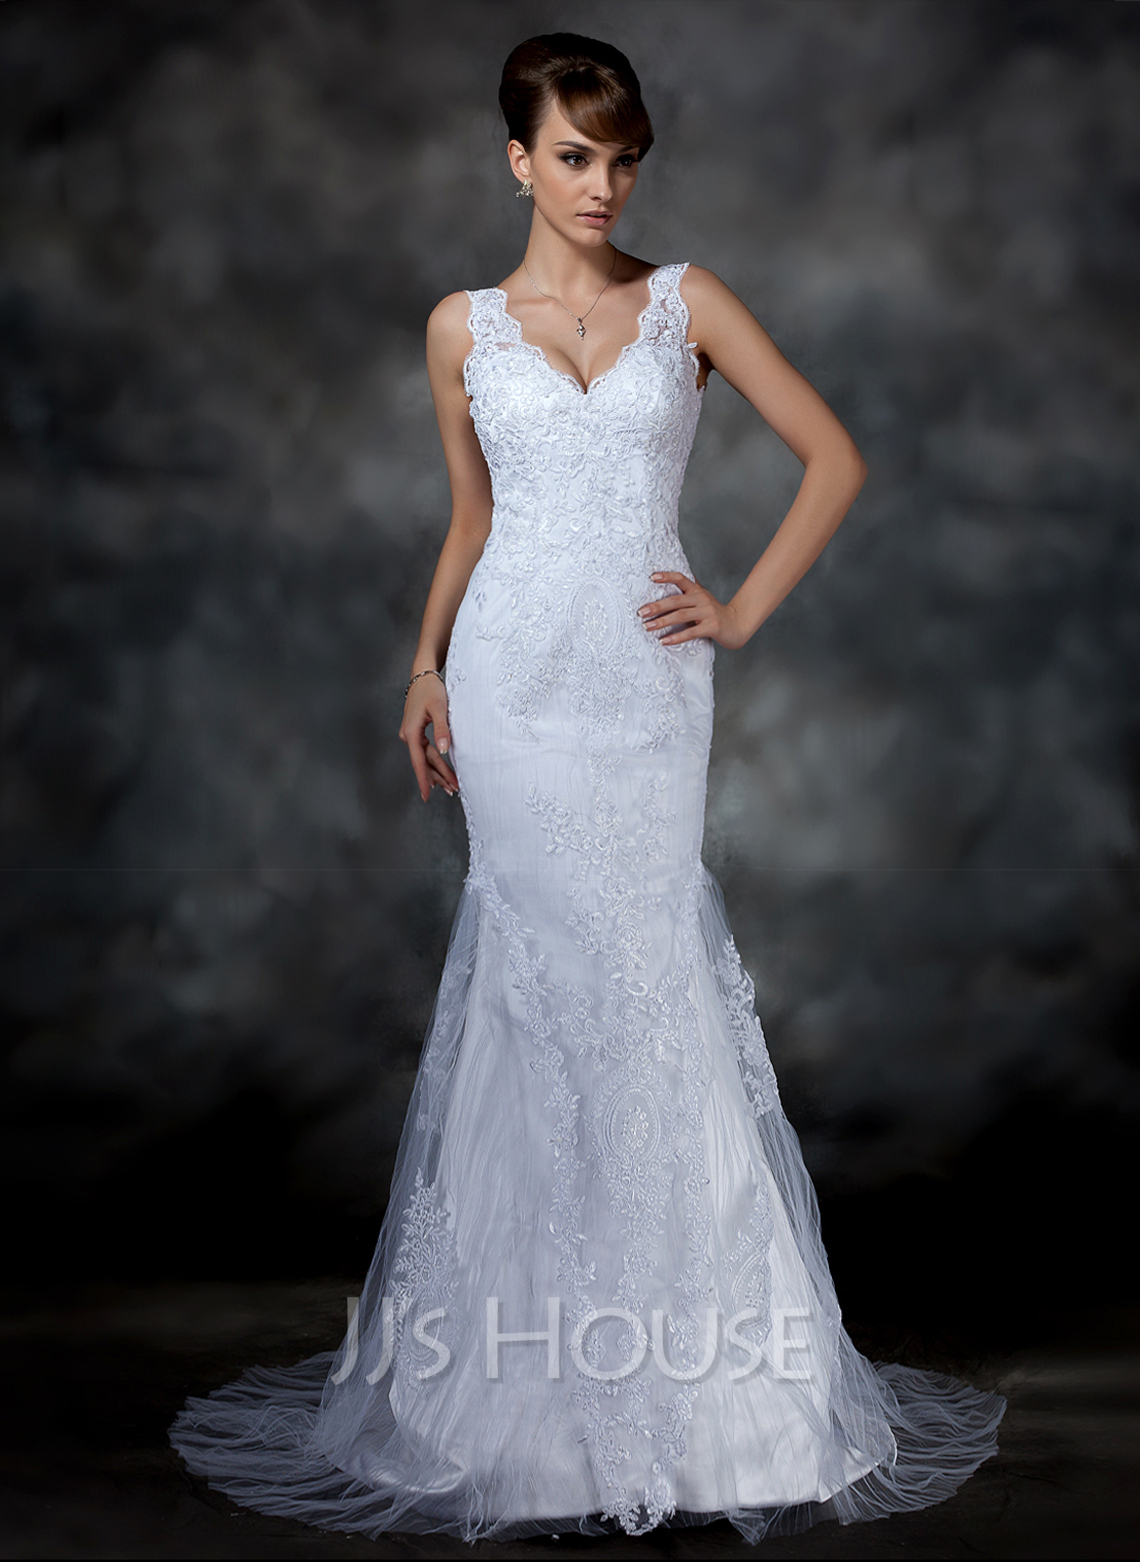 Trumpet/Mermaid V-neck Court Train Tulle Lace Wedding Dress With Beading